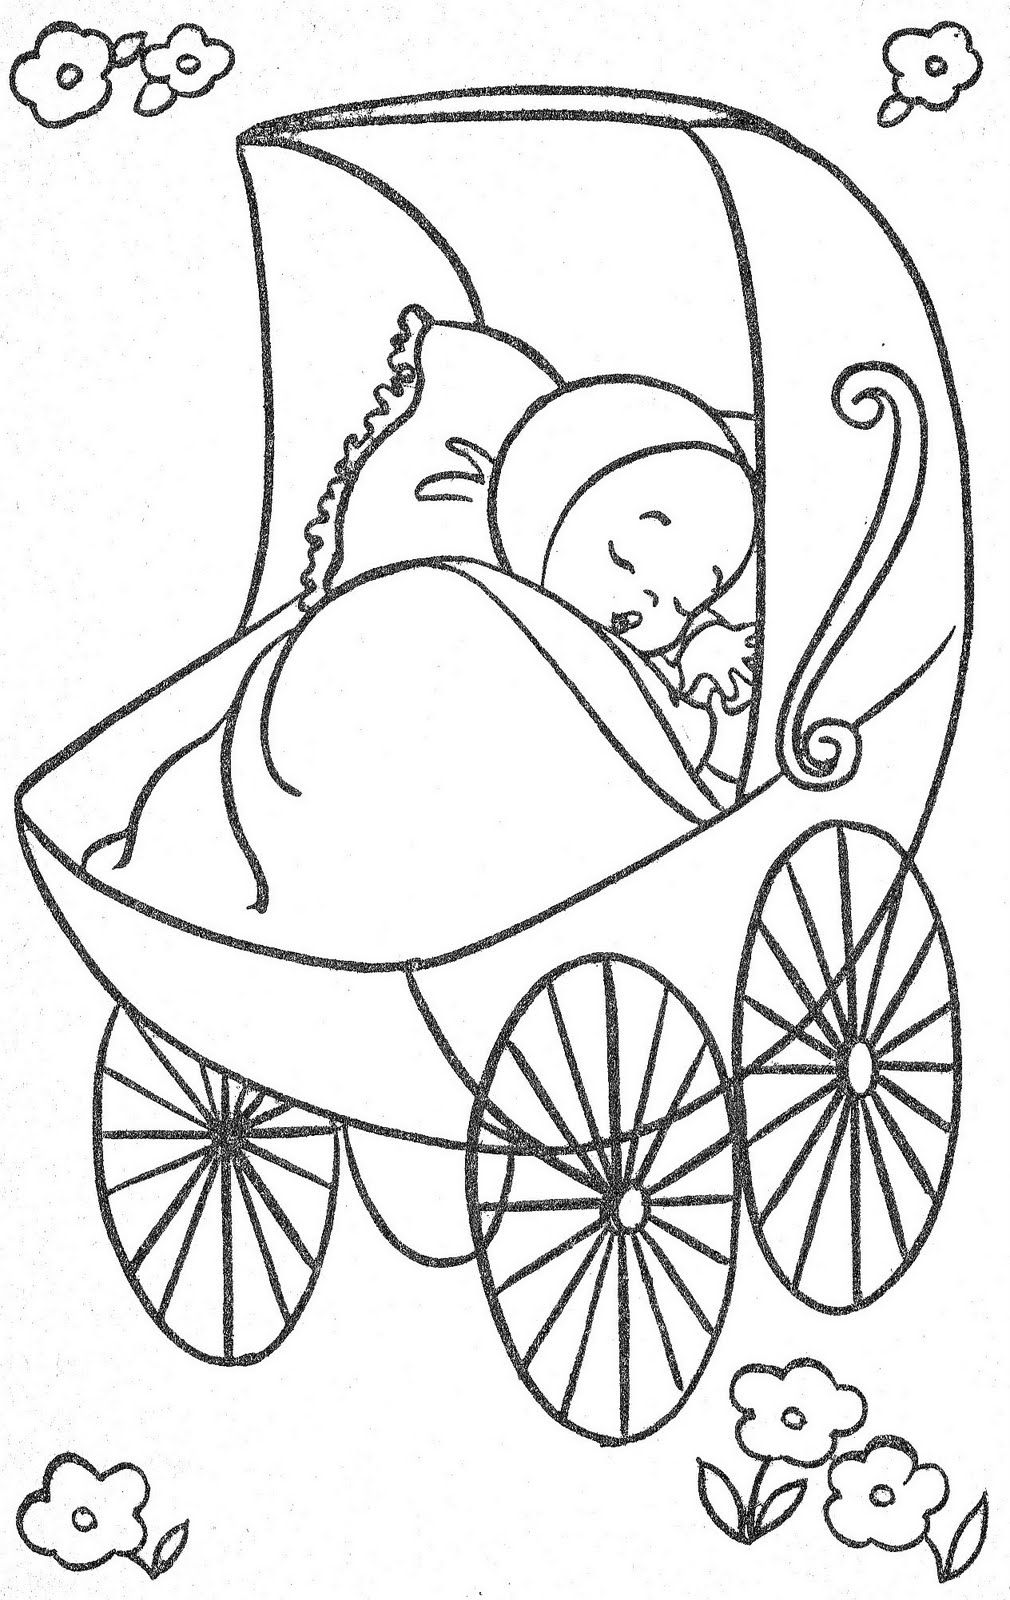 Just The Drawing No Other Info That I Could Find Children